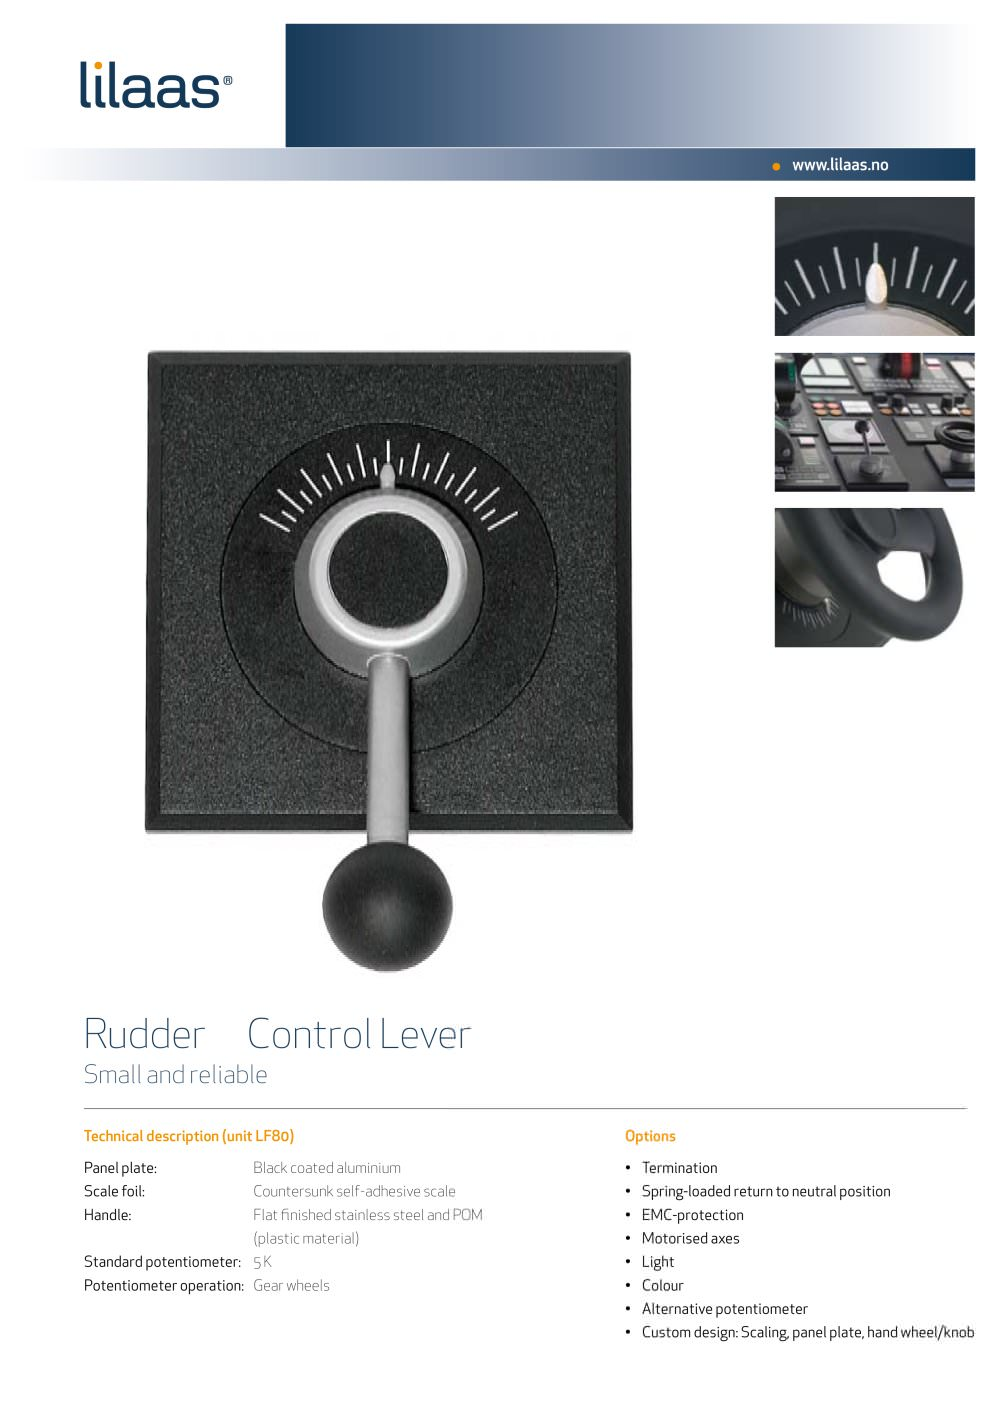 follow-up rudder control handle for ships LF80 - Lilaas - PDF ...